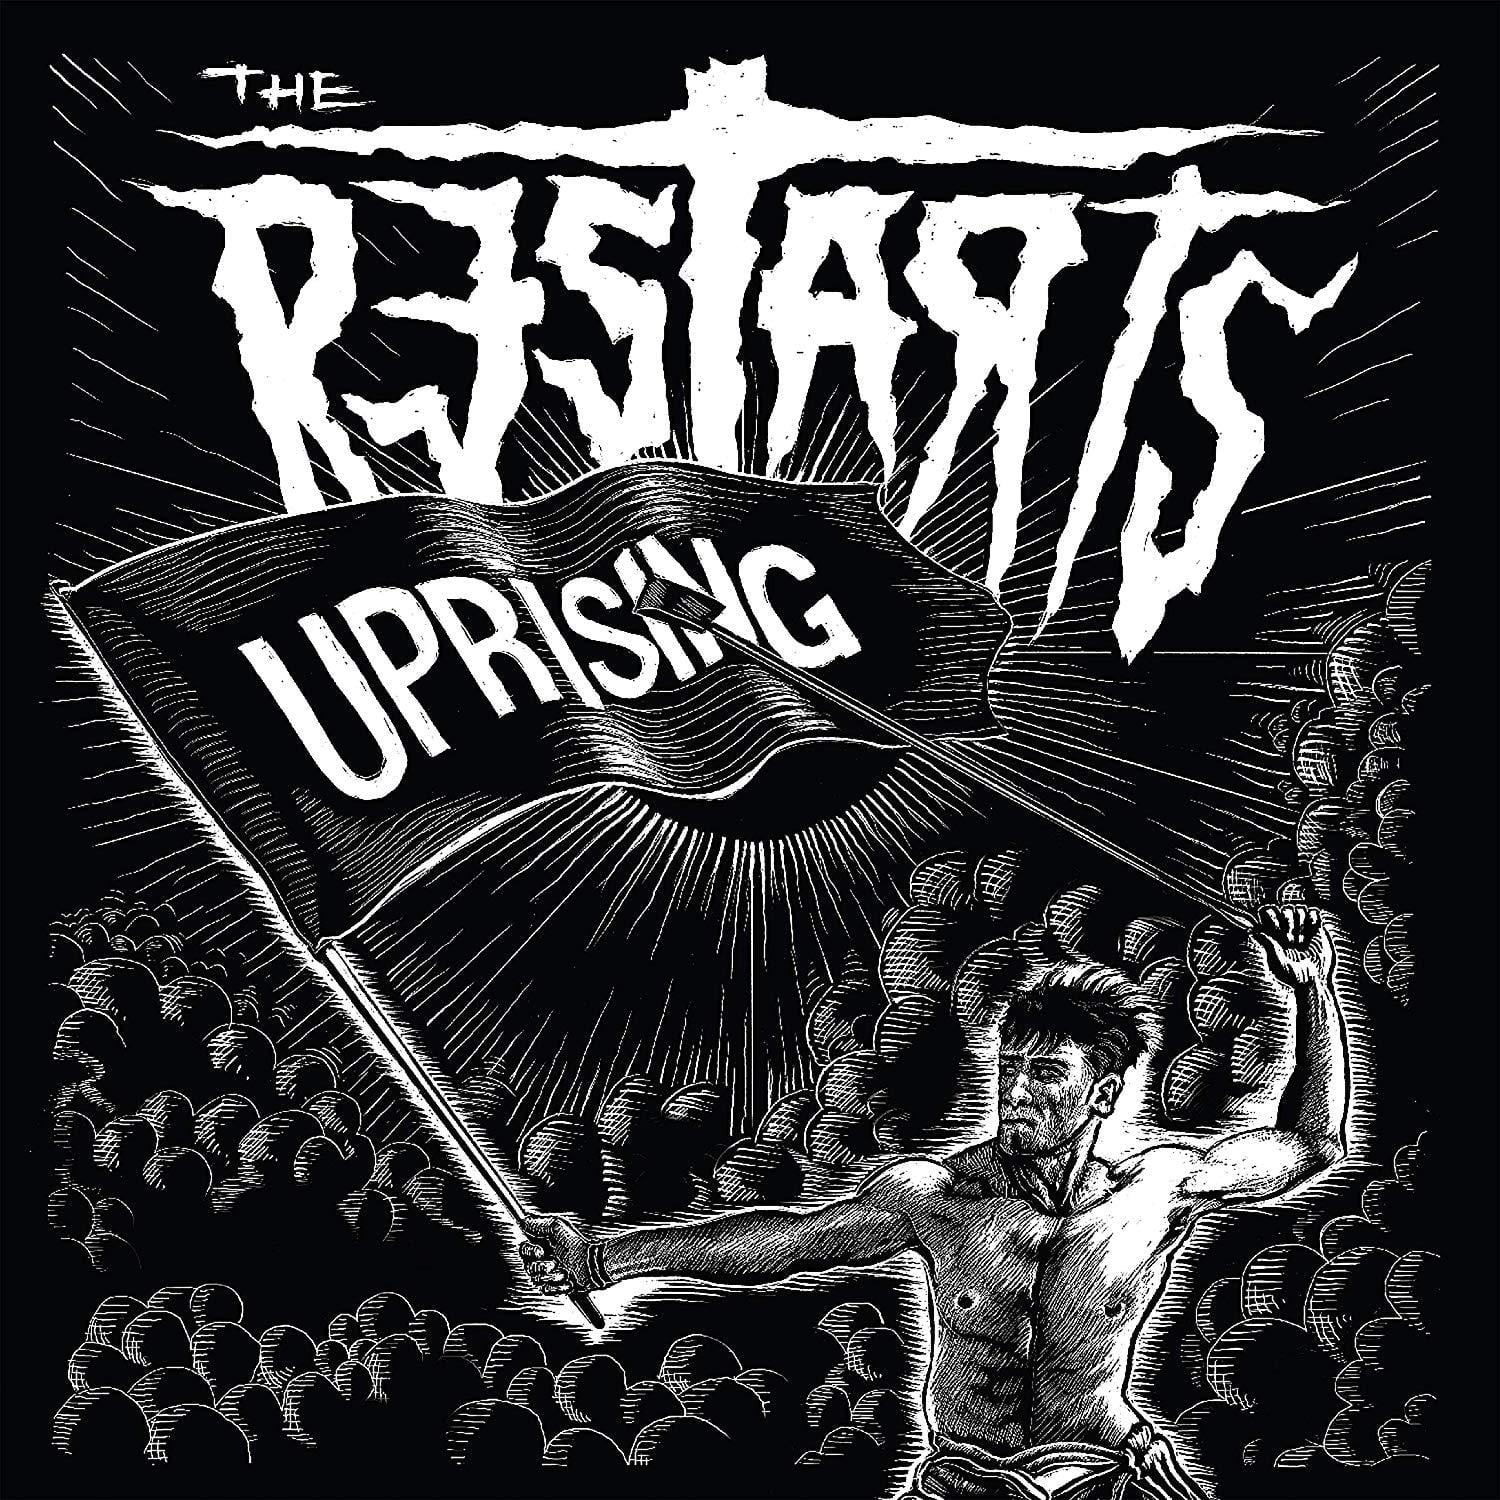 Restarts, The - Uprising [CD]